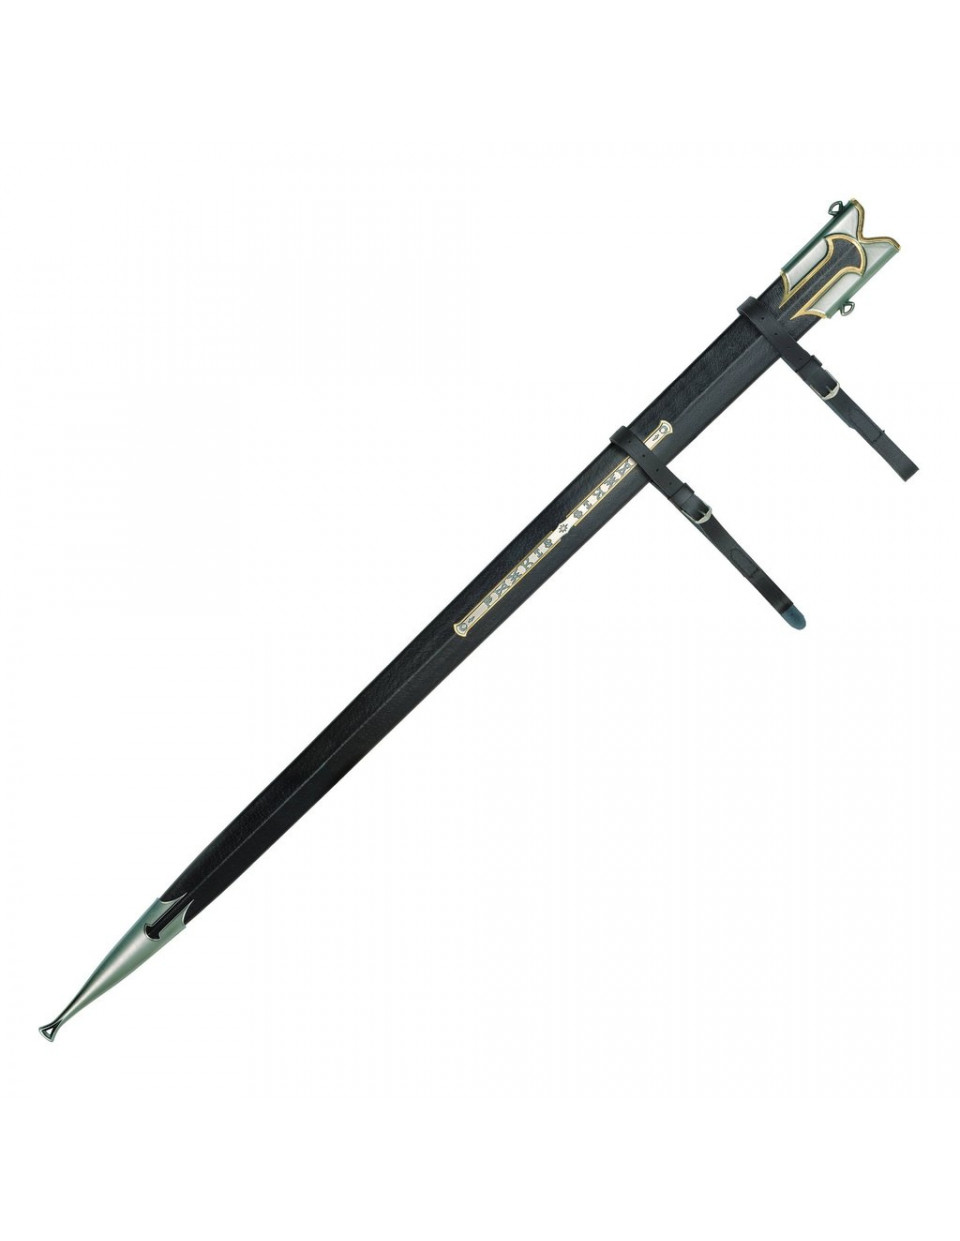 Lord of the Rings - Anduril skede